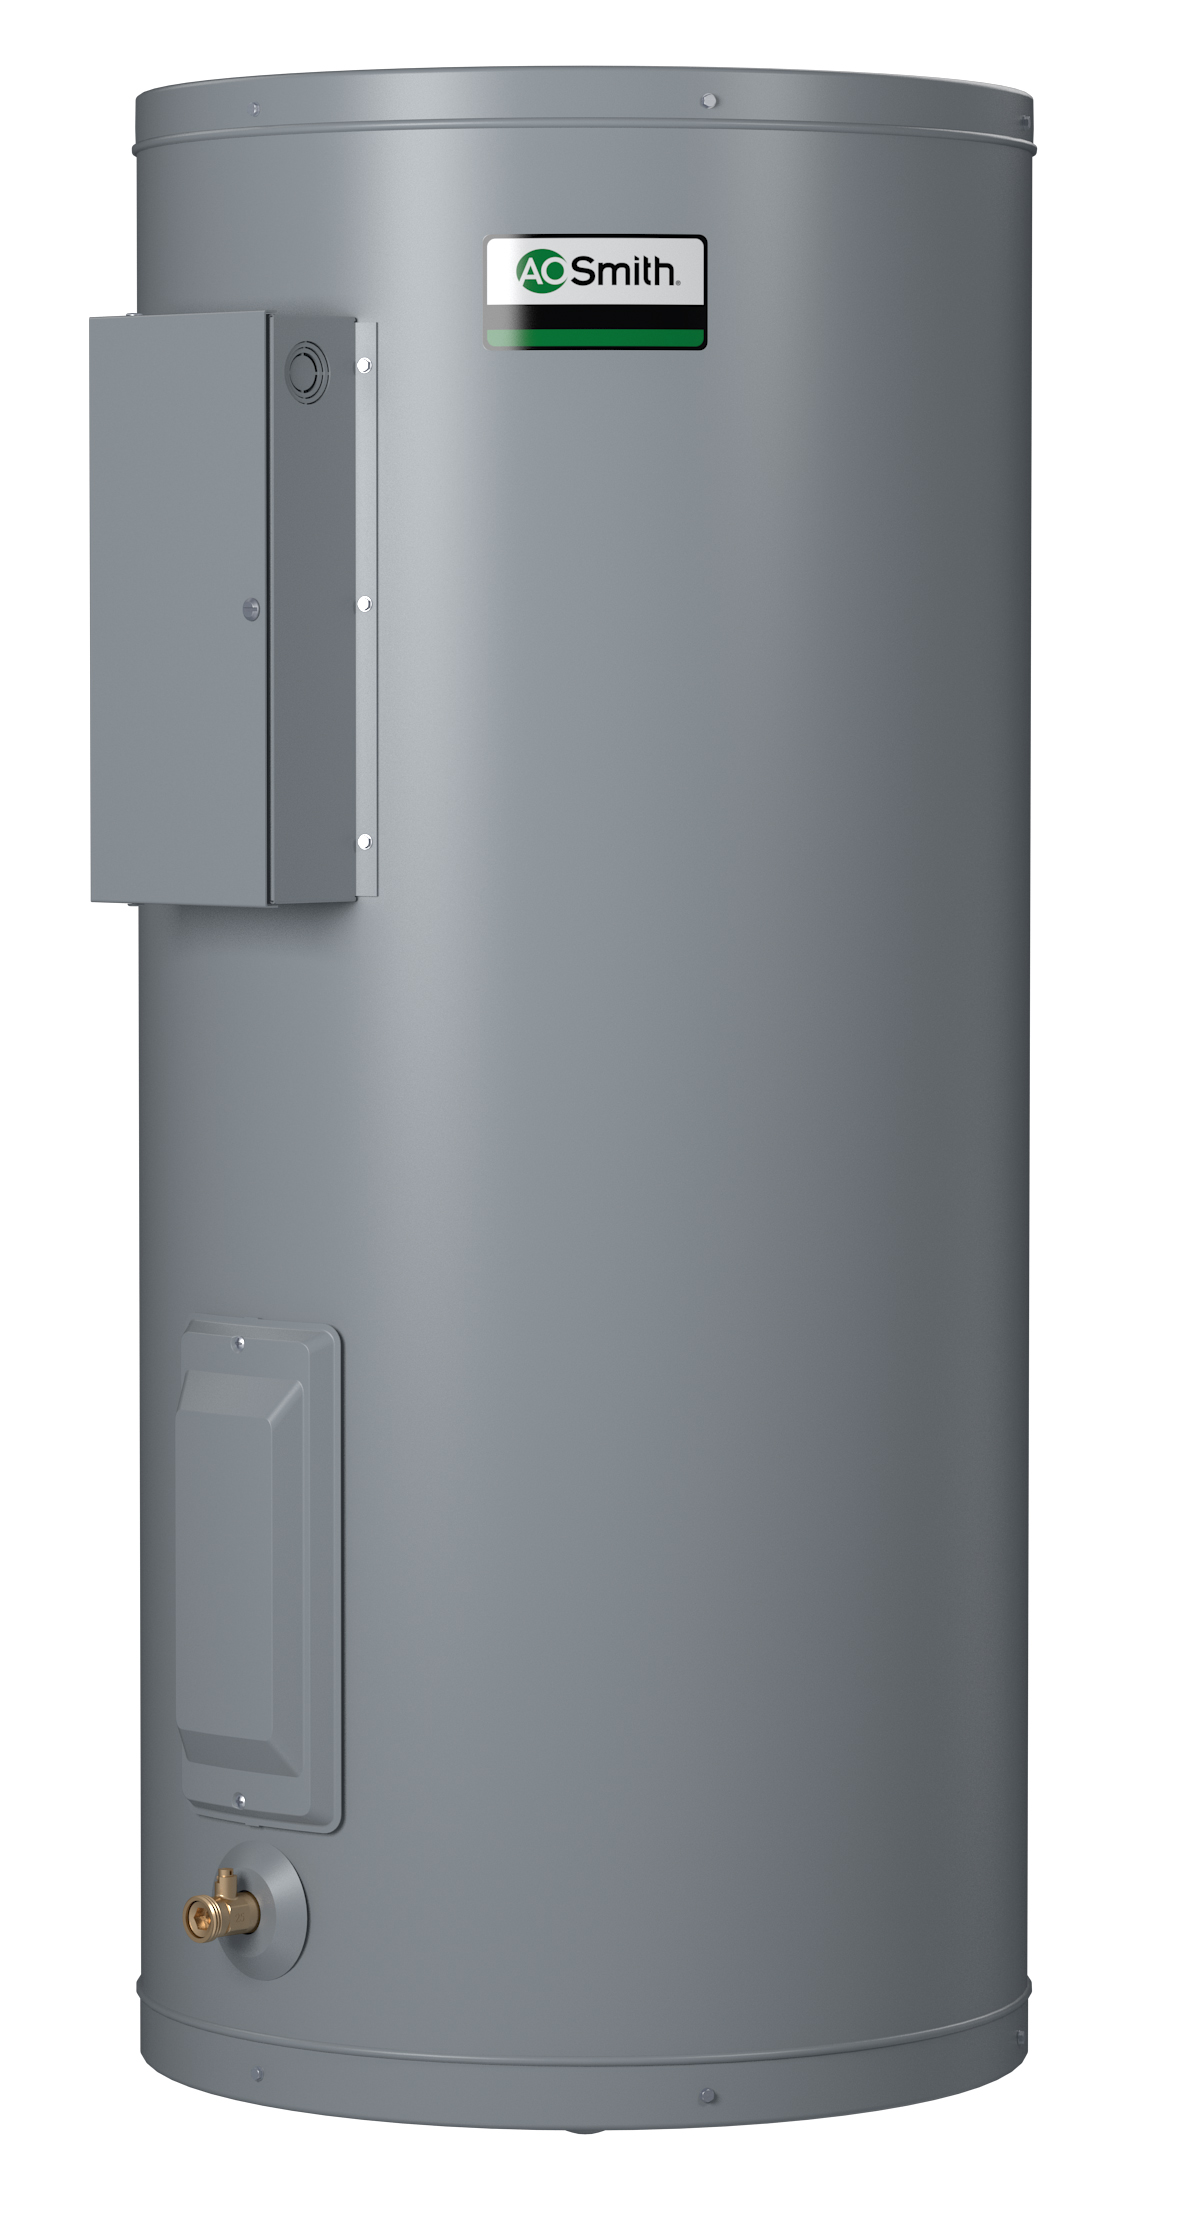 hight resolution of ao smith den 120d 119 gallons 12 0kw 480 volt 3